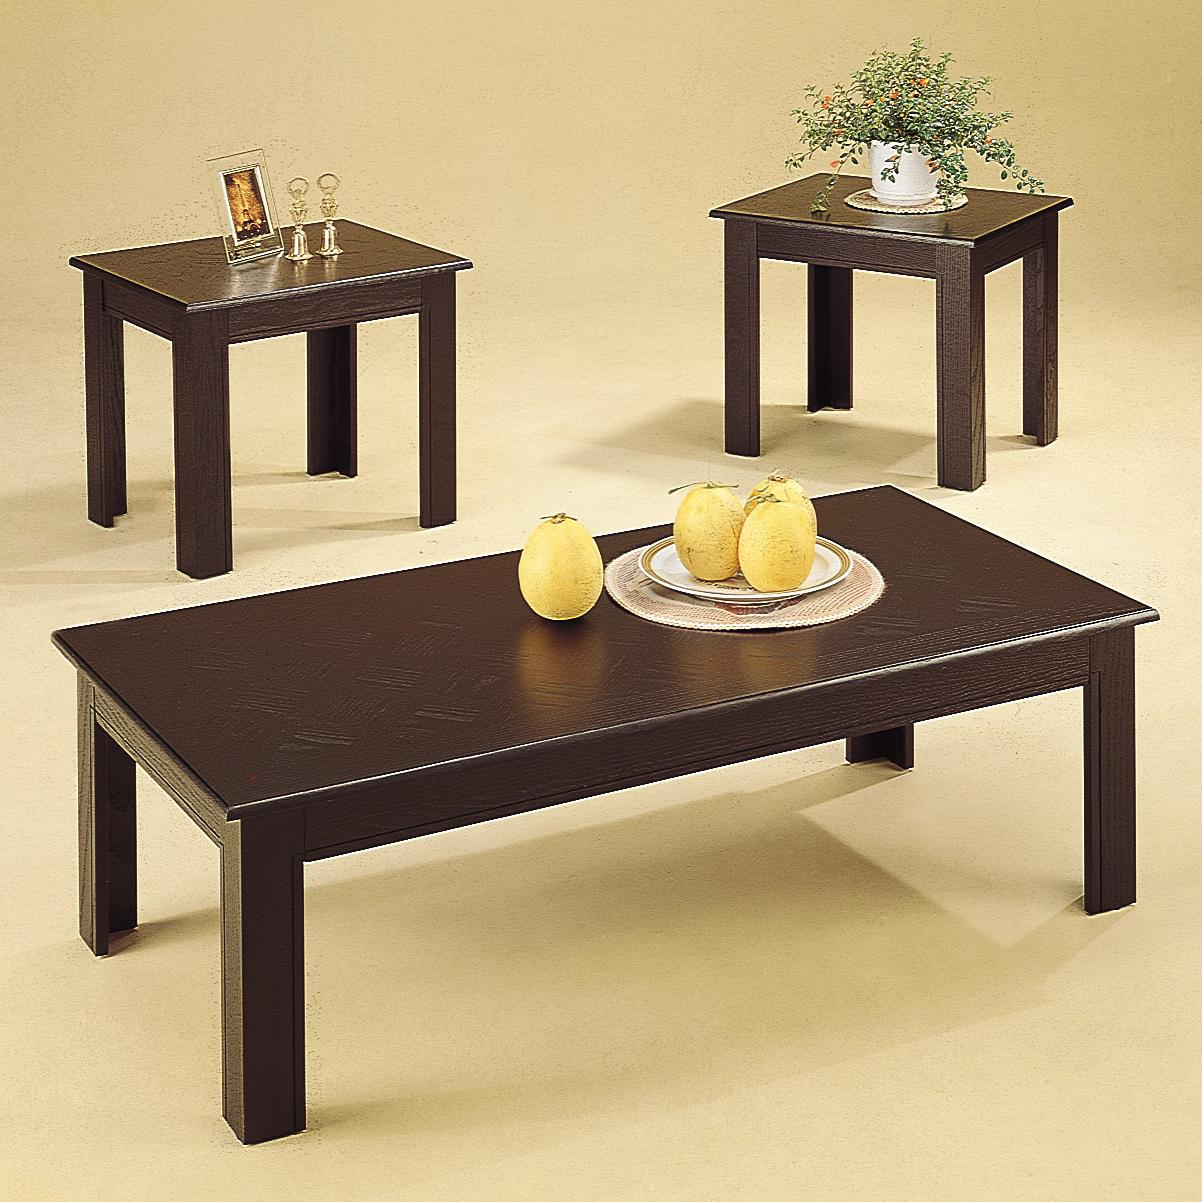 5169 occasional table sets 3 piece parquet occasional table set